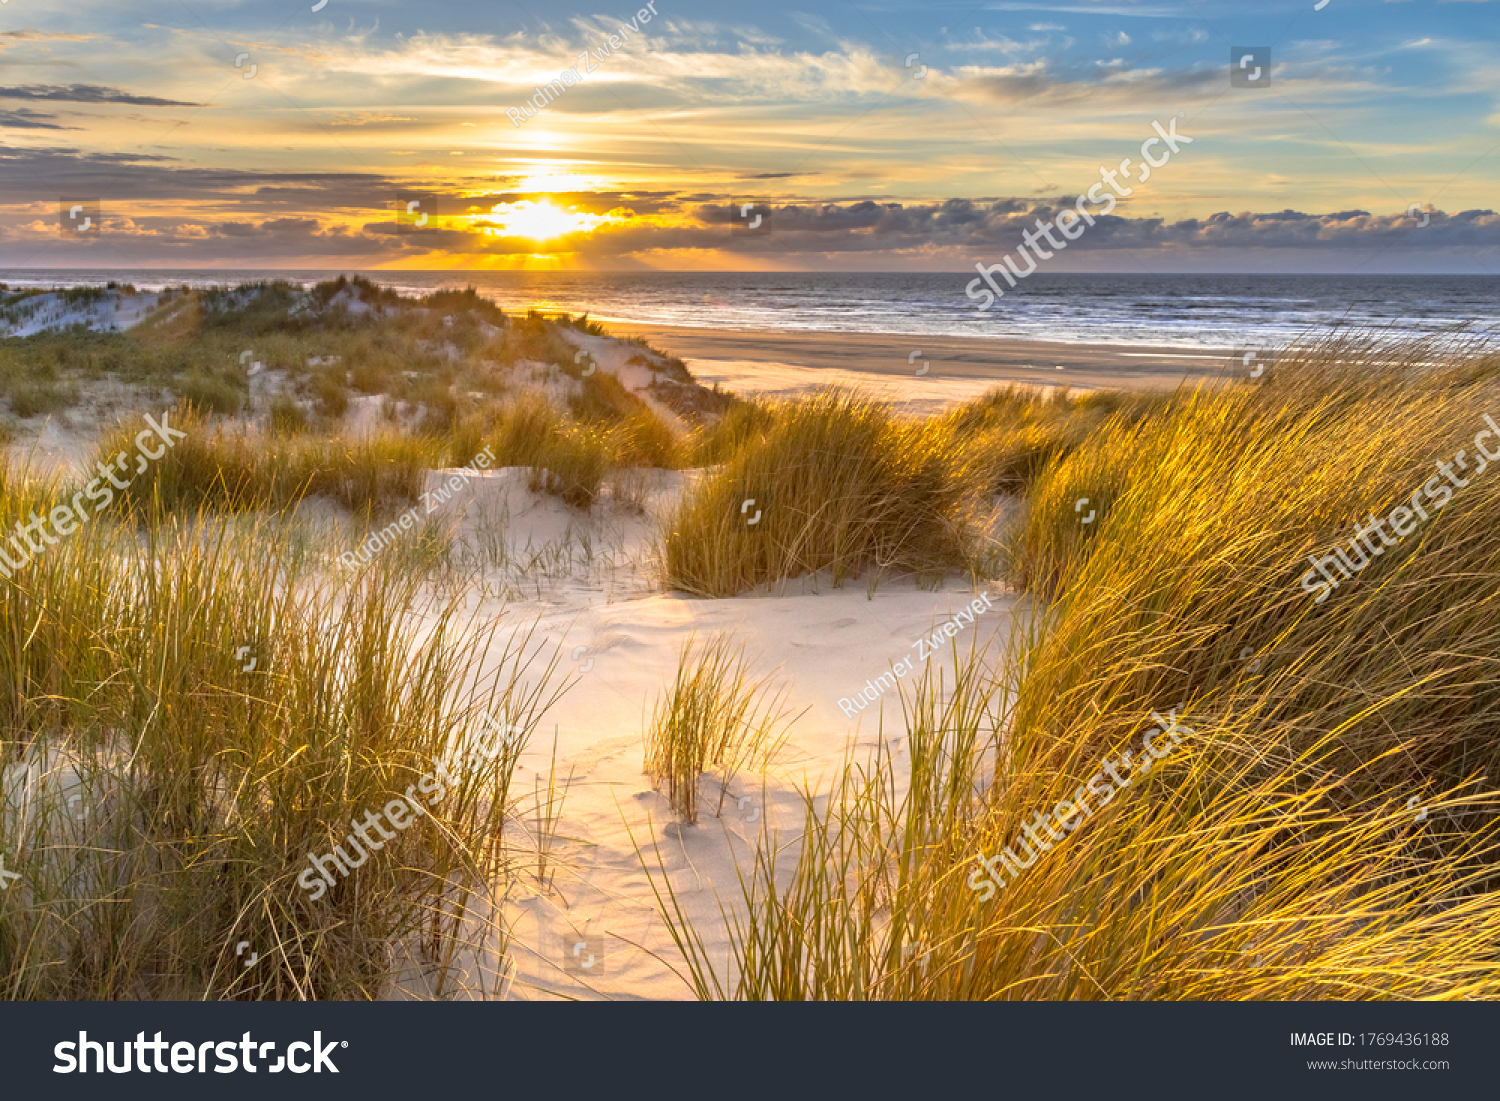 View from dune top over sunset in North Sea from the island of Ameland, Friesland, Netherlands #1769436188